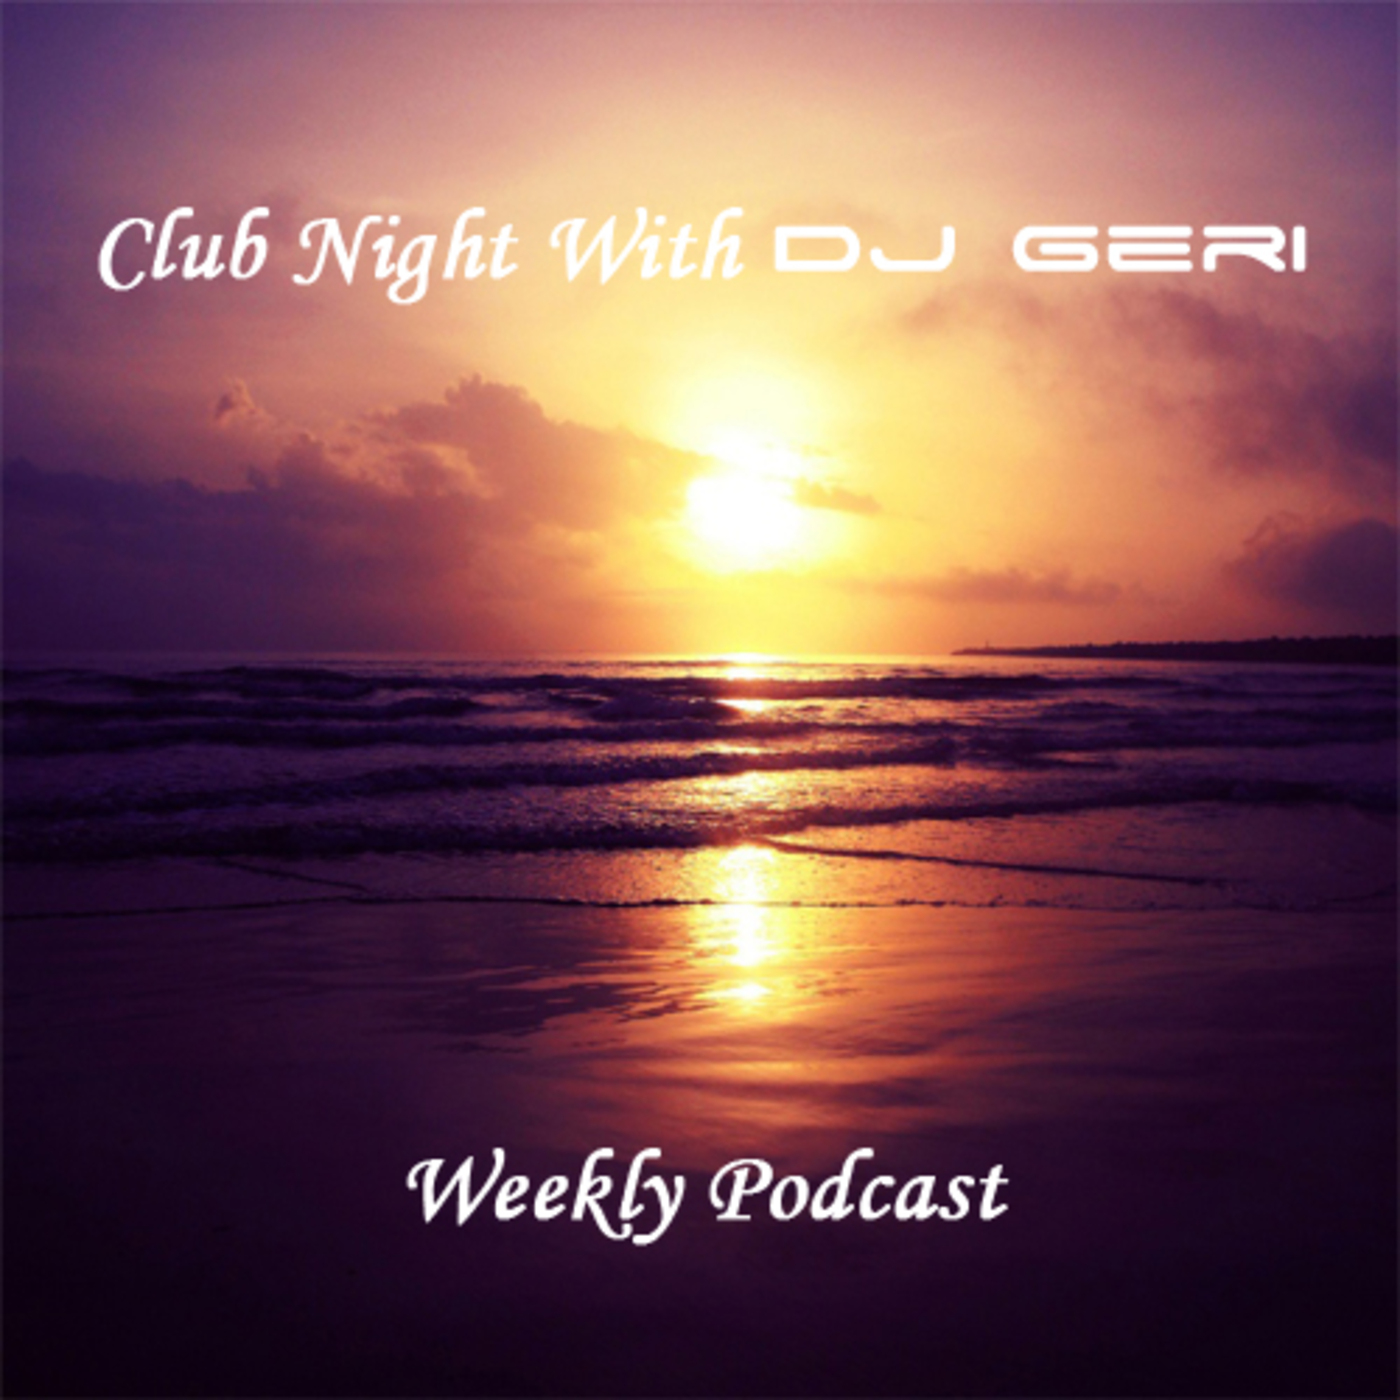 Club Night With DJ Geri